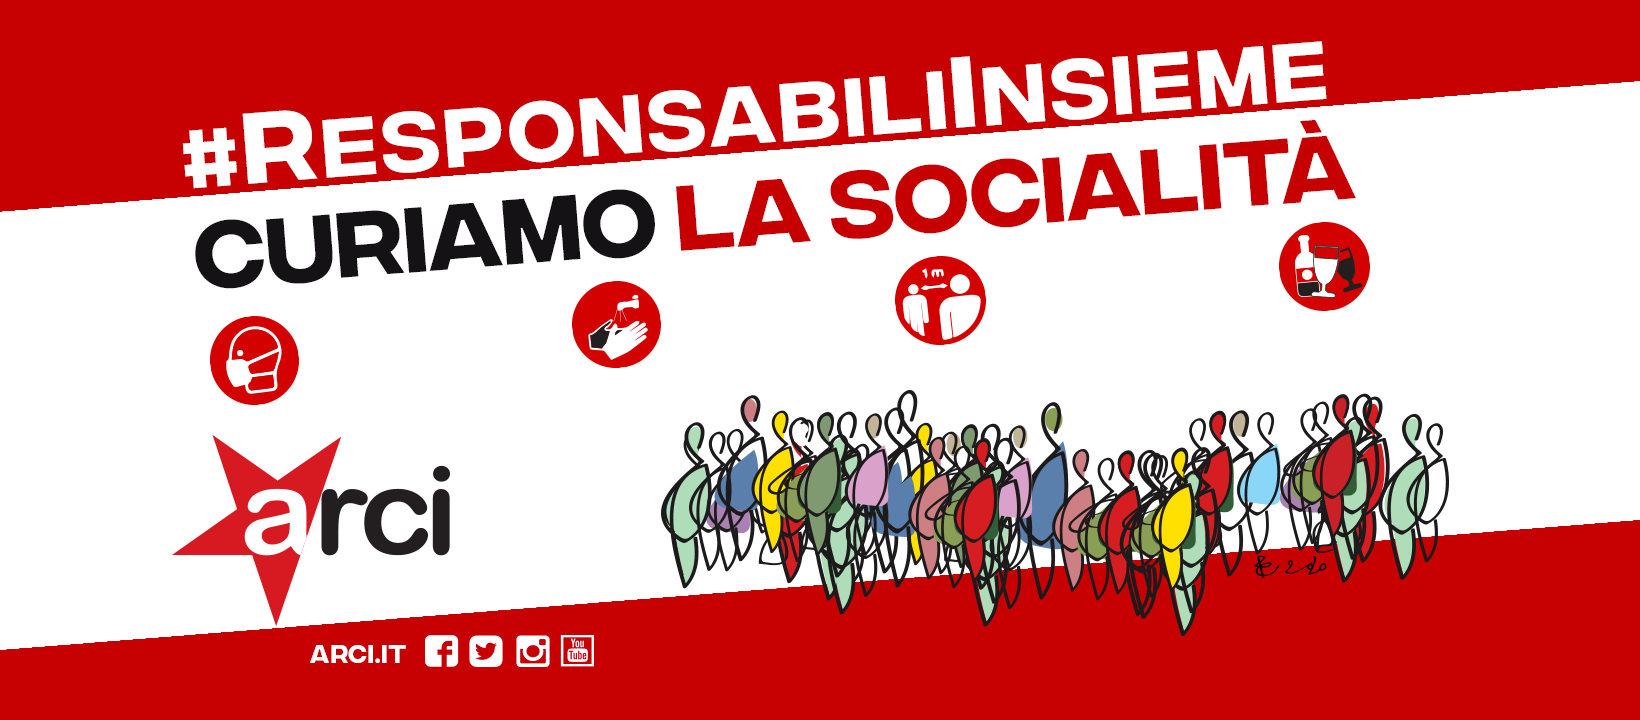 ITALY: New DPCM, the Government should not ignore civil society acting in the sphere of culture and social inclusion.